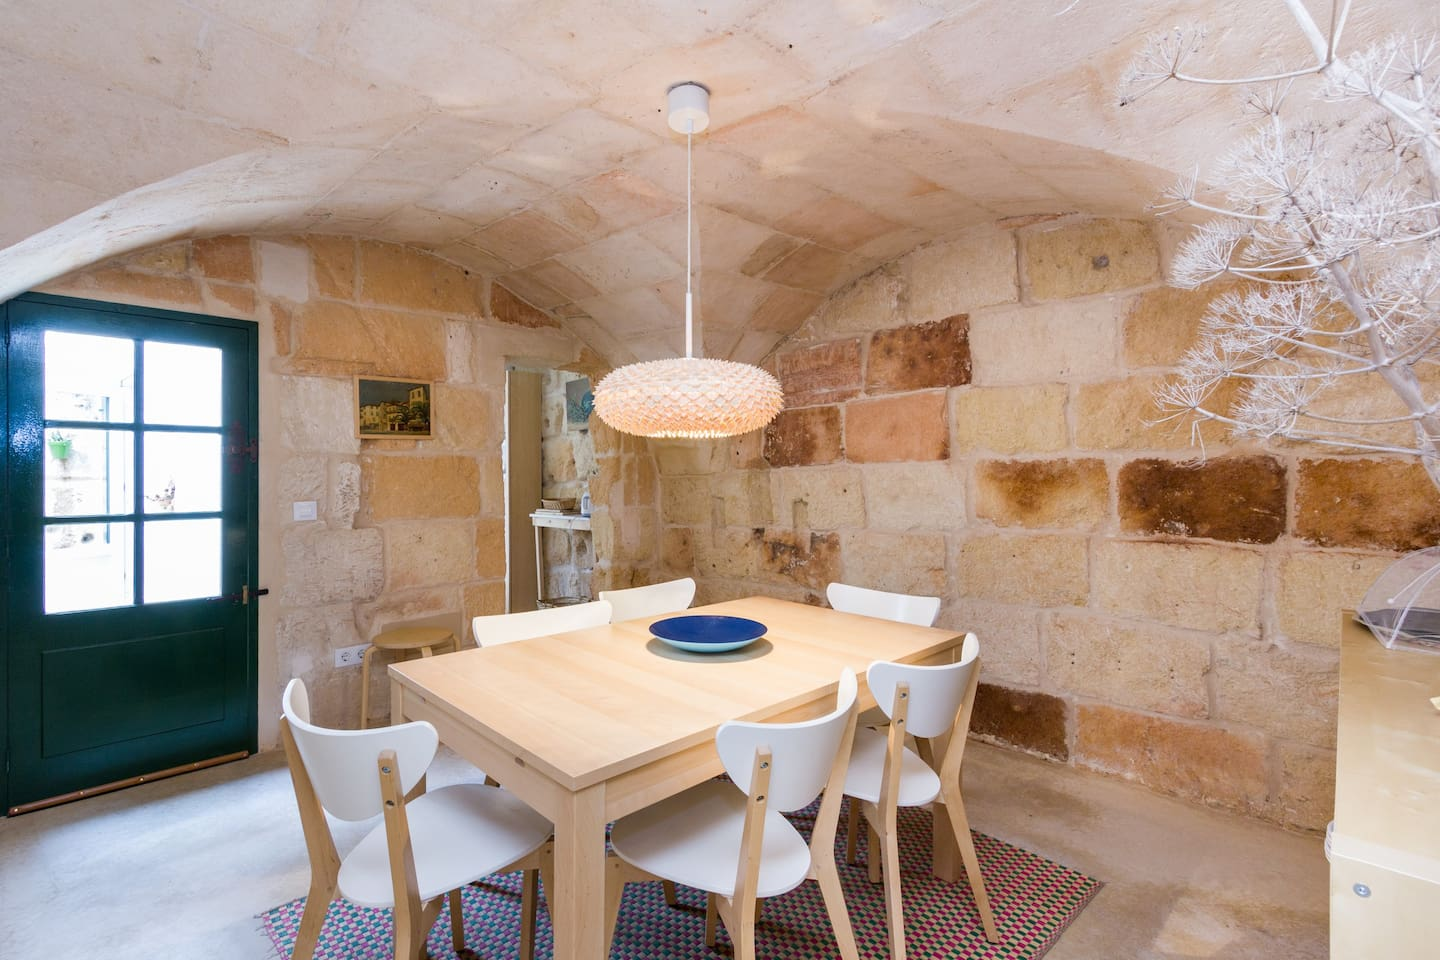 stone vault in the dining room